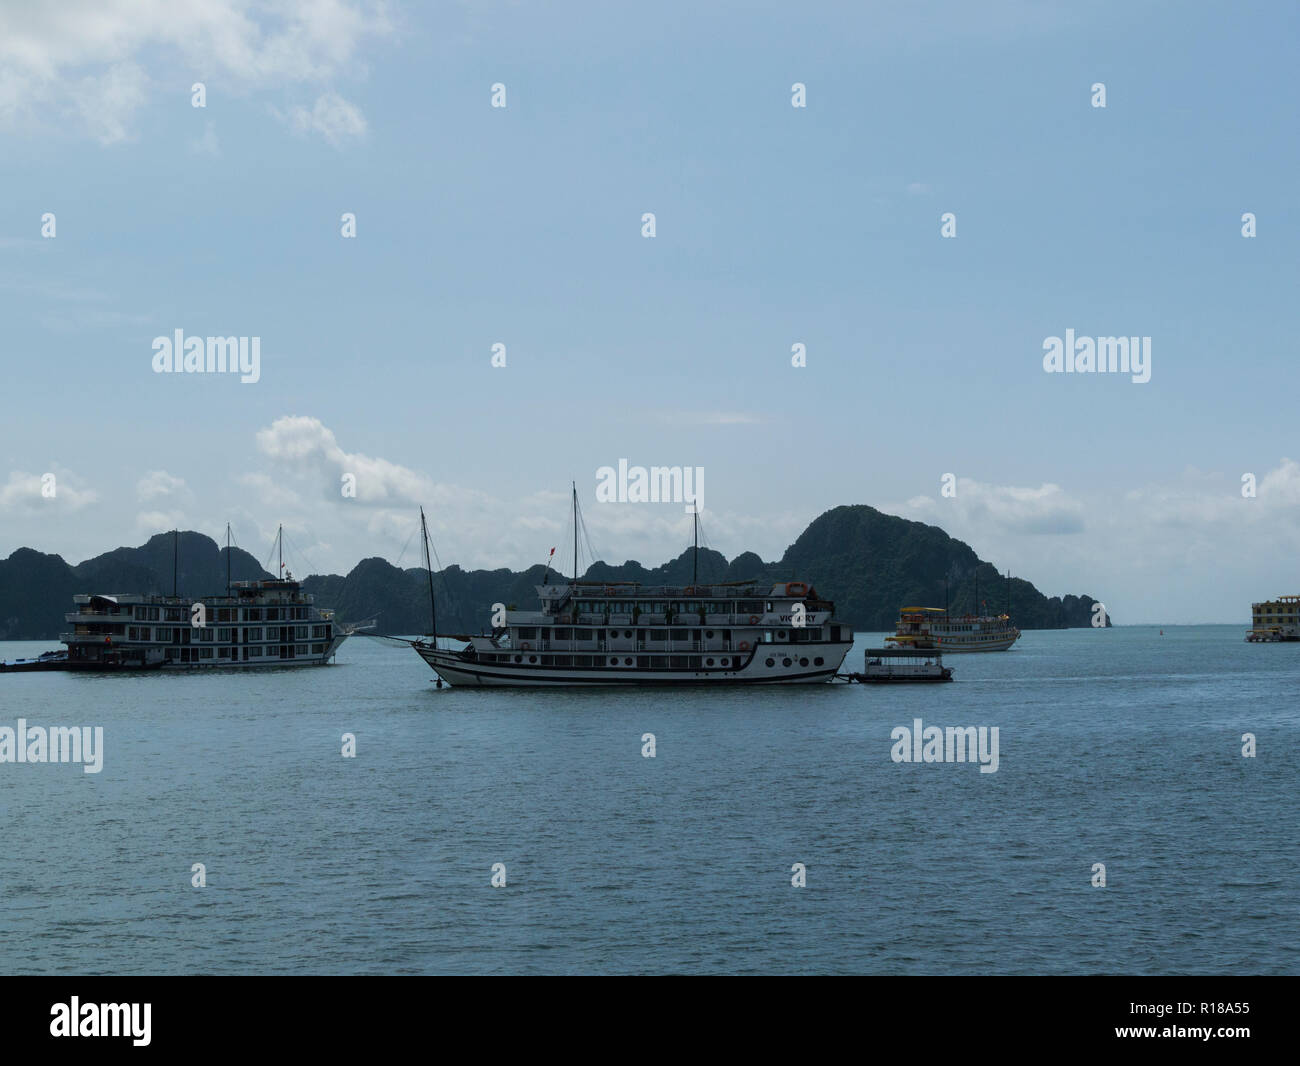 Junk boats tourist cruise in emerald waters of Halong Bay South China Sea Vietnam Asia with limestone island peaks covered in jungle foliage - Stock Image